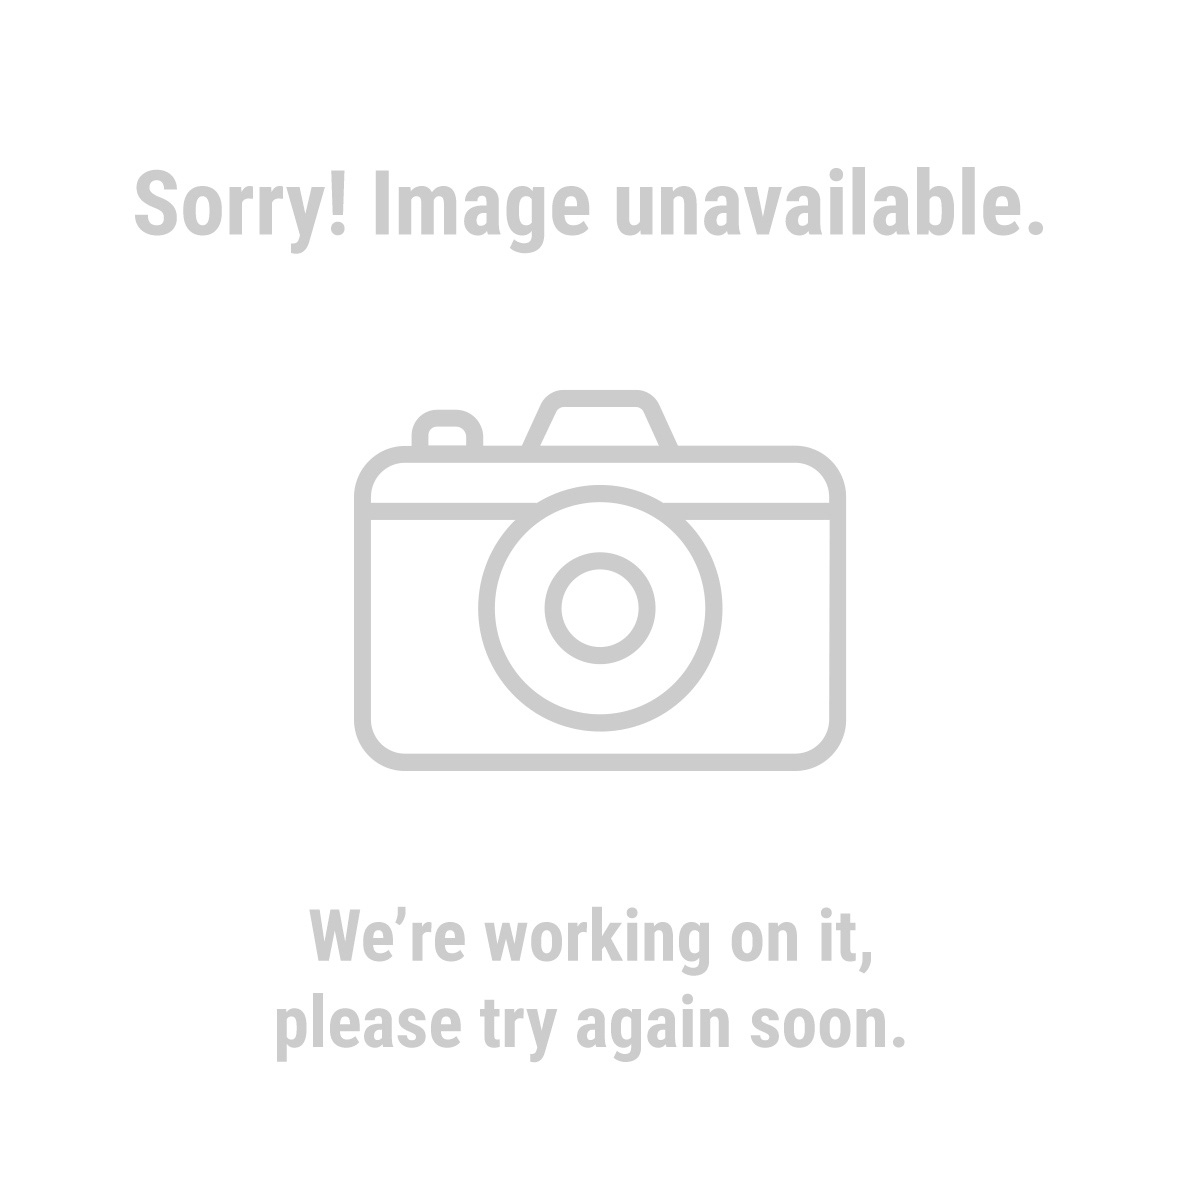 garage shelving harbor freight pretty storage. Black Bedroom Furniture Sets. Home Design Ideas